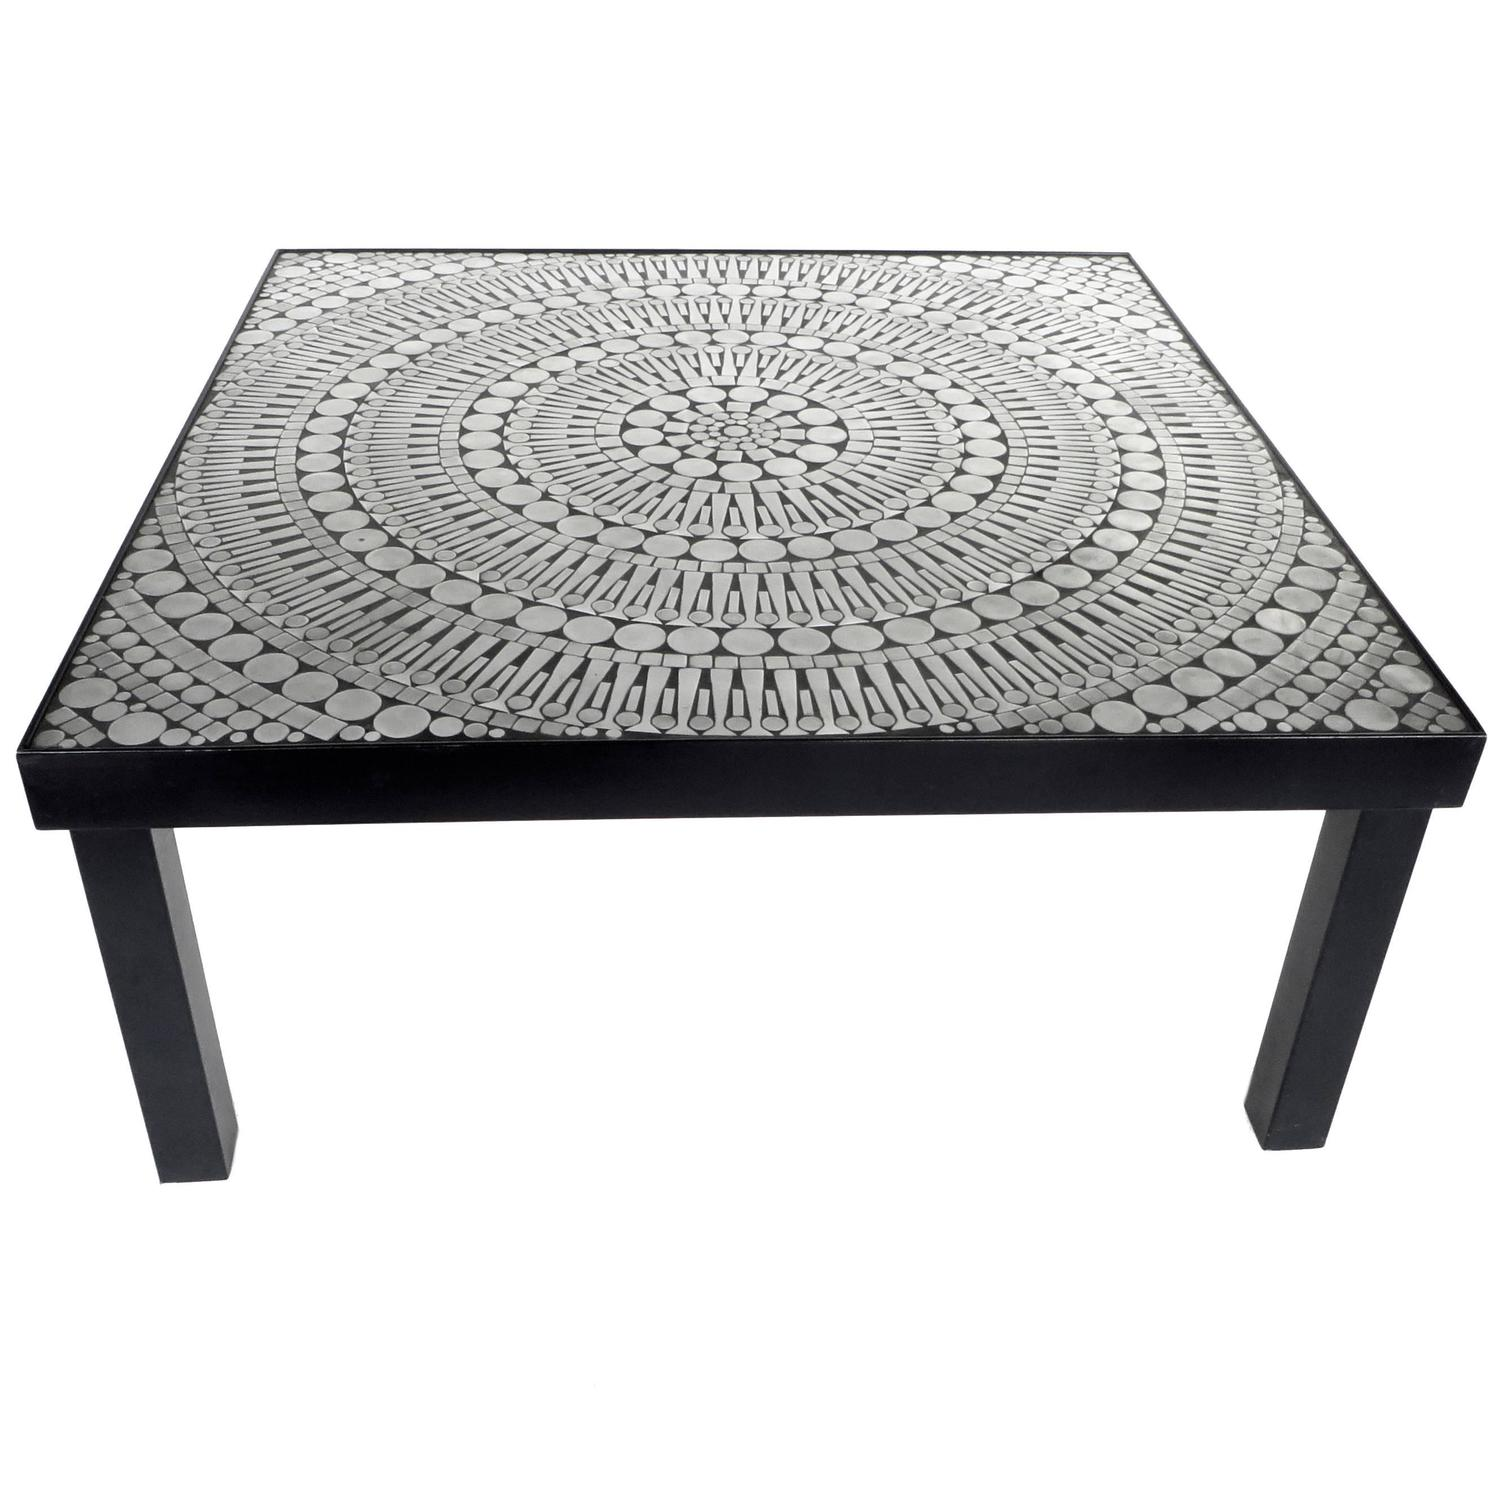 Mosaic Aluminum and Steel Coffee Table by Belgian Designer Raf